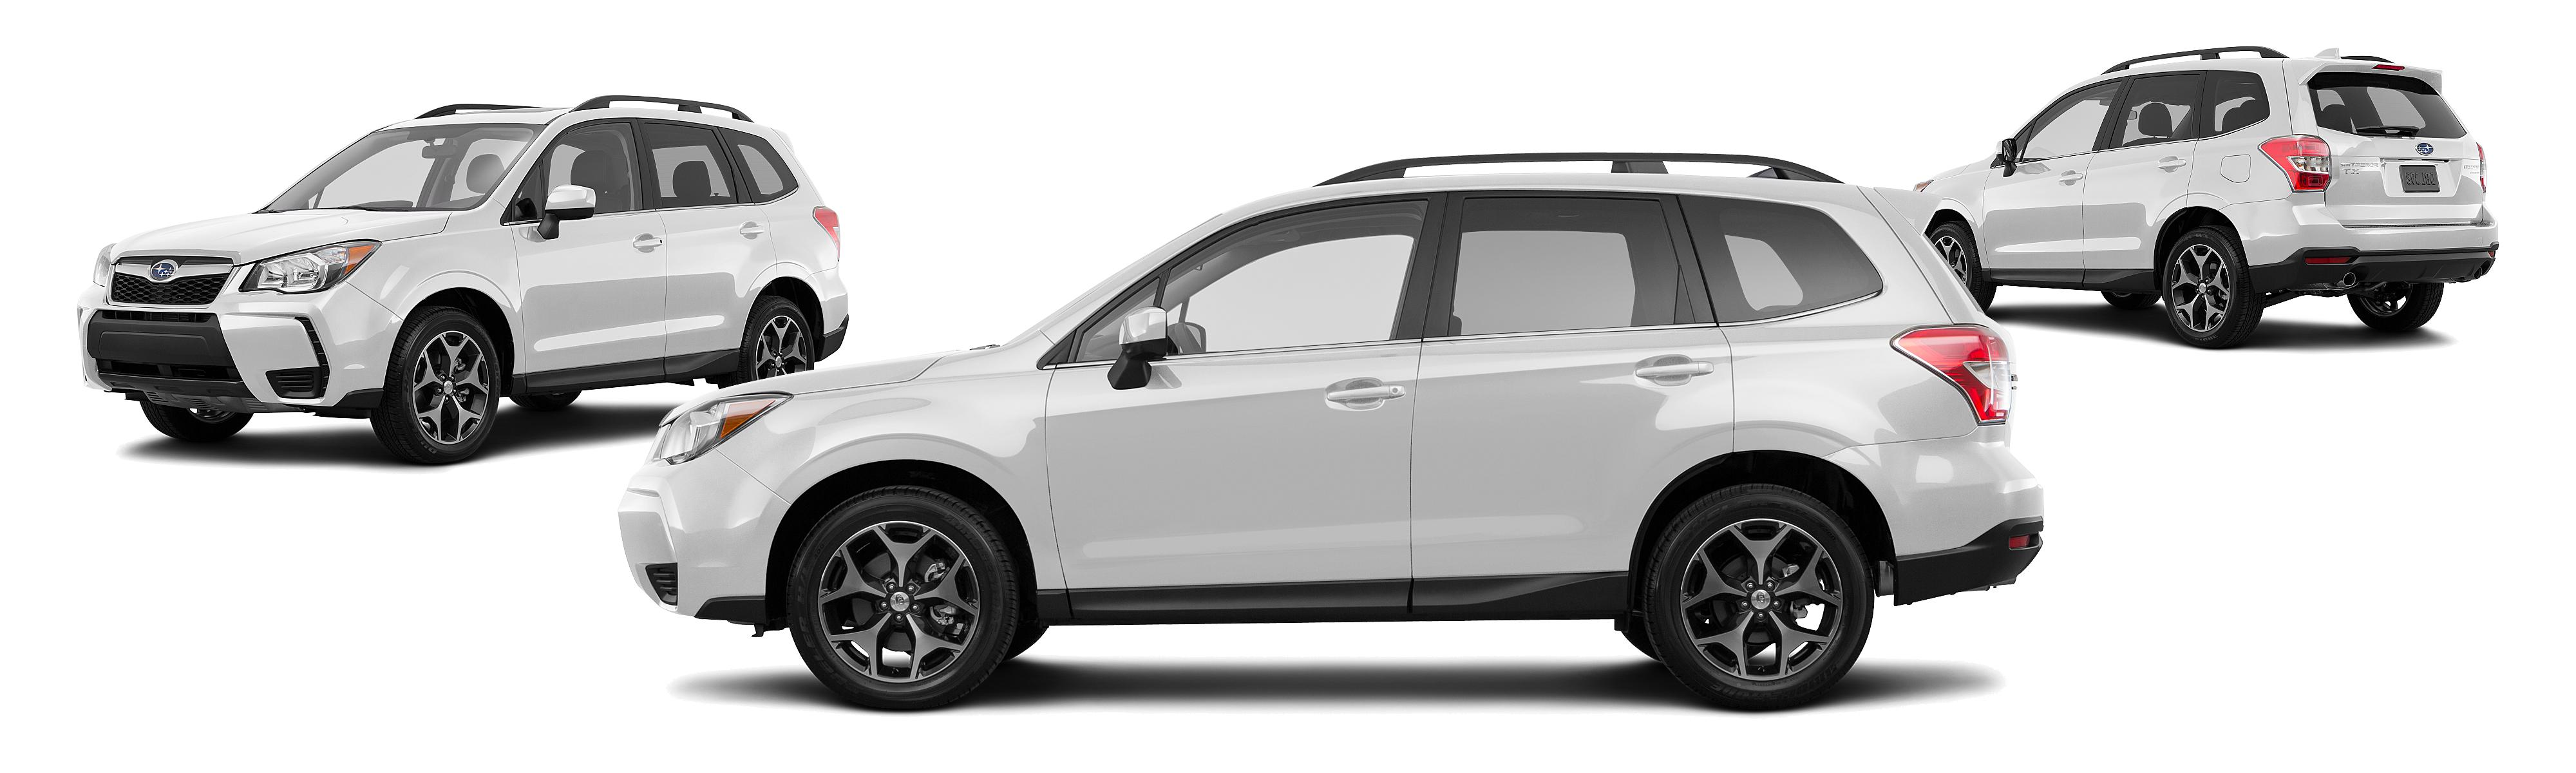 100 Subaru Forester 2016 Black 2016 Chevy Equinox